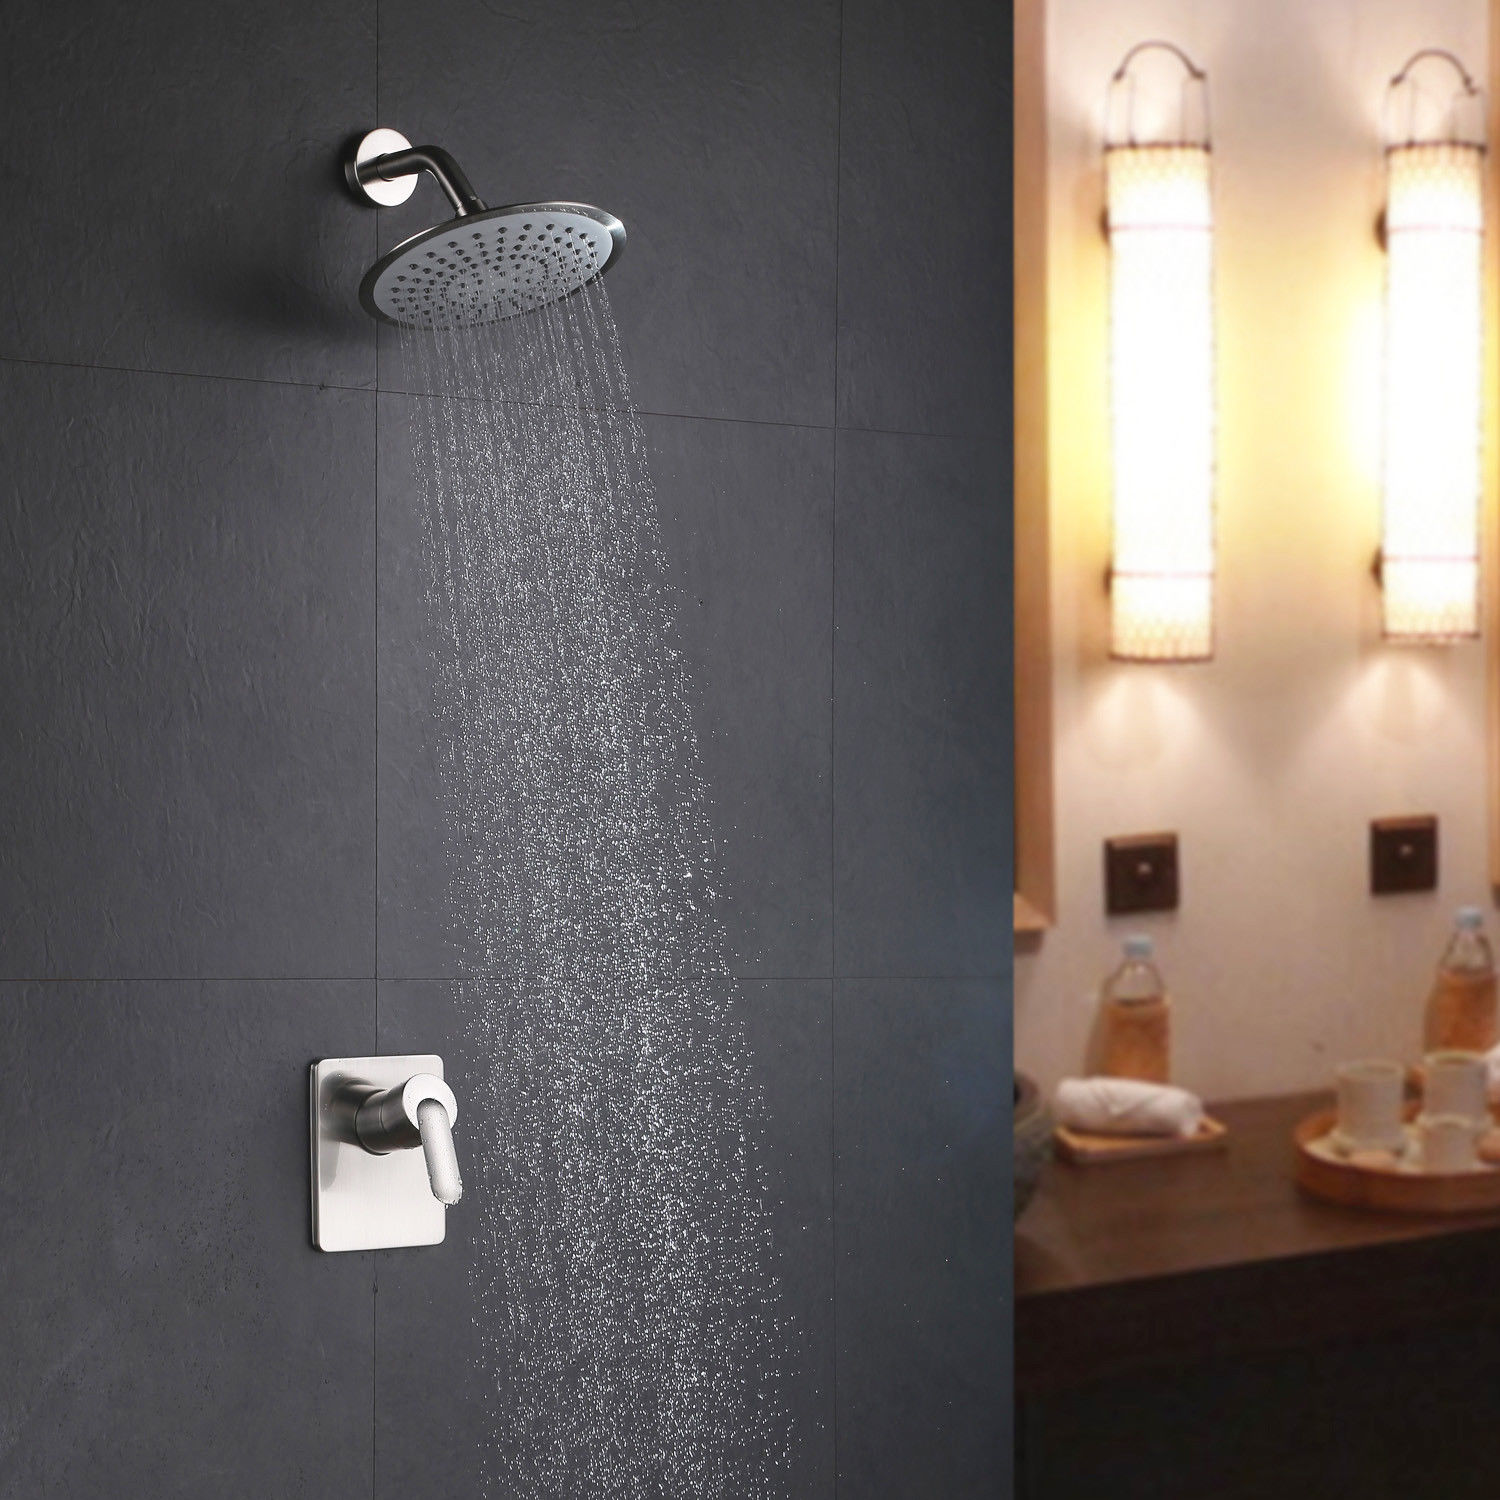 Details About Wall Mounted Brushed Nickel Rain Showerhead System Modern Bathroom Shower Set